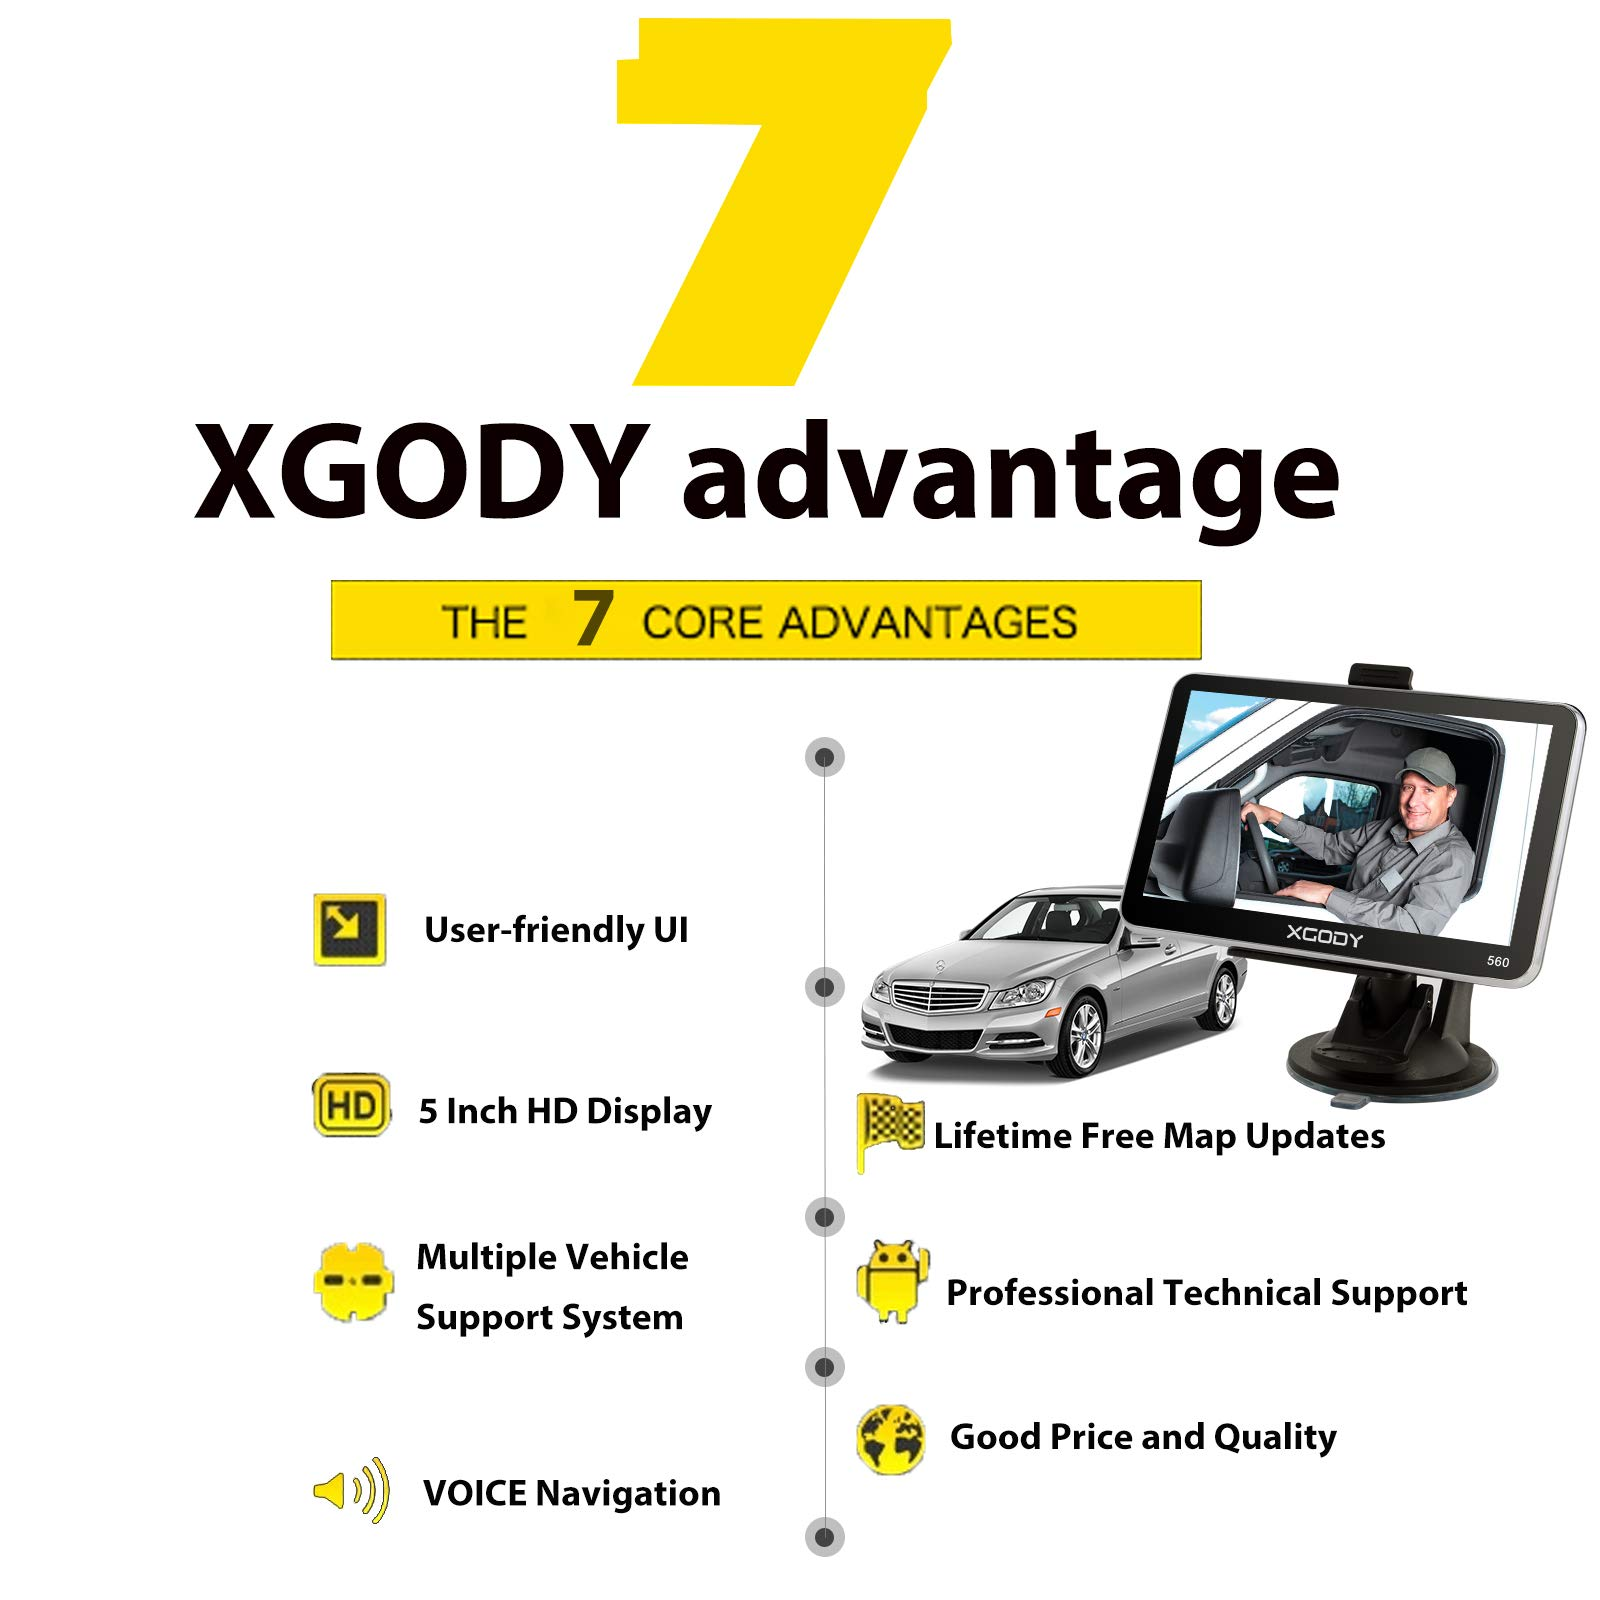 XGODY 560 SAT NAV GPS Navigation System 5 Inch Android 8GB 128MB Car Truck  Lorry Satellite Navigator with Post Code Search Speed Camera Alerts UK and